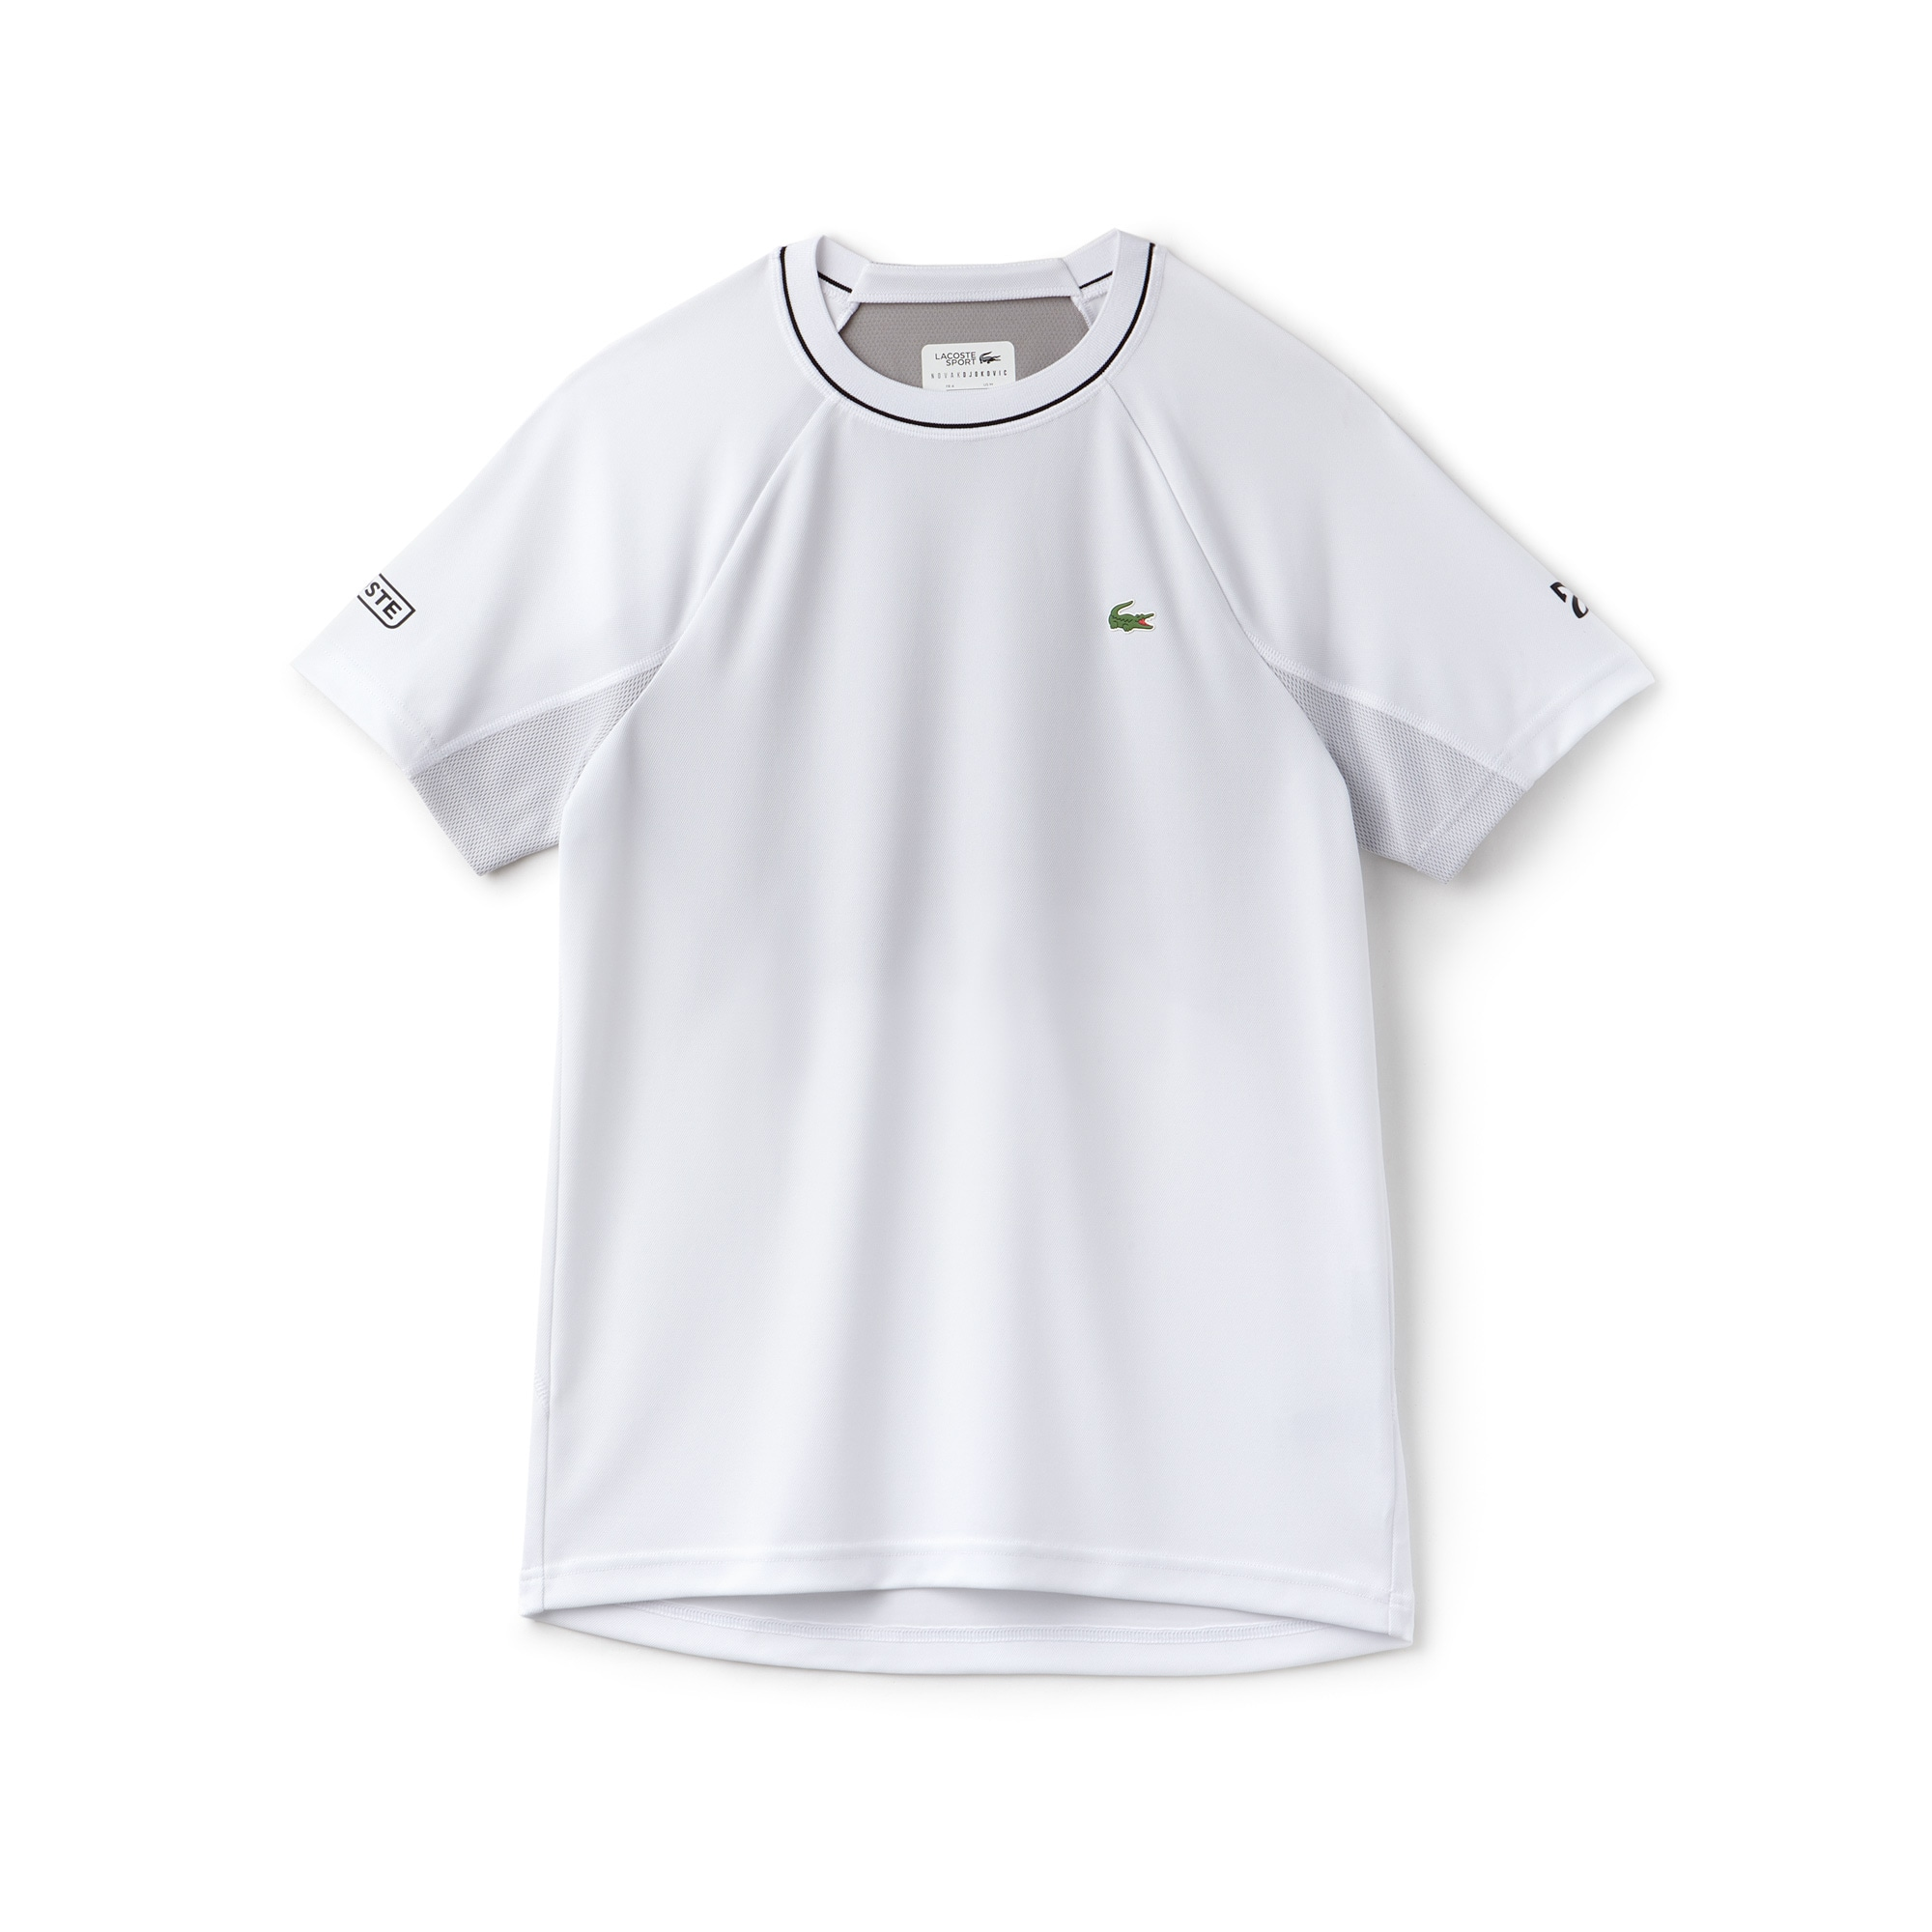 Camiseta Cuello Redondo Lacoste Sport Collection Novak Djokovic Support With Style De Piqué Técnico Y Malla